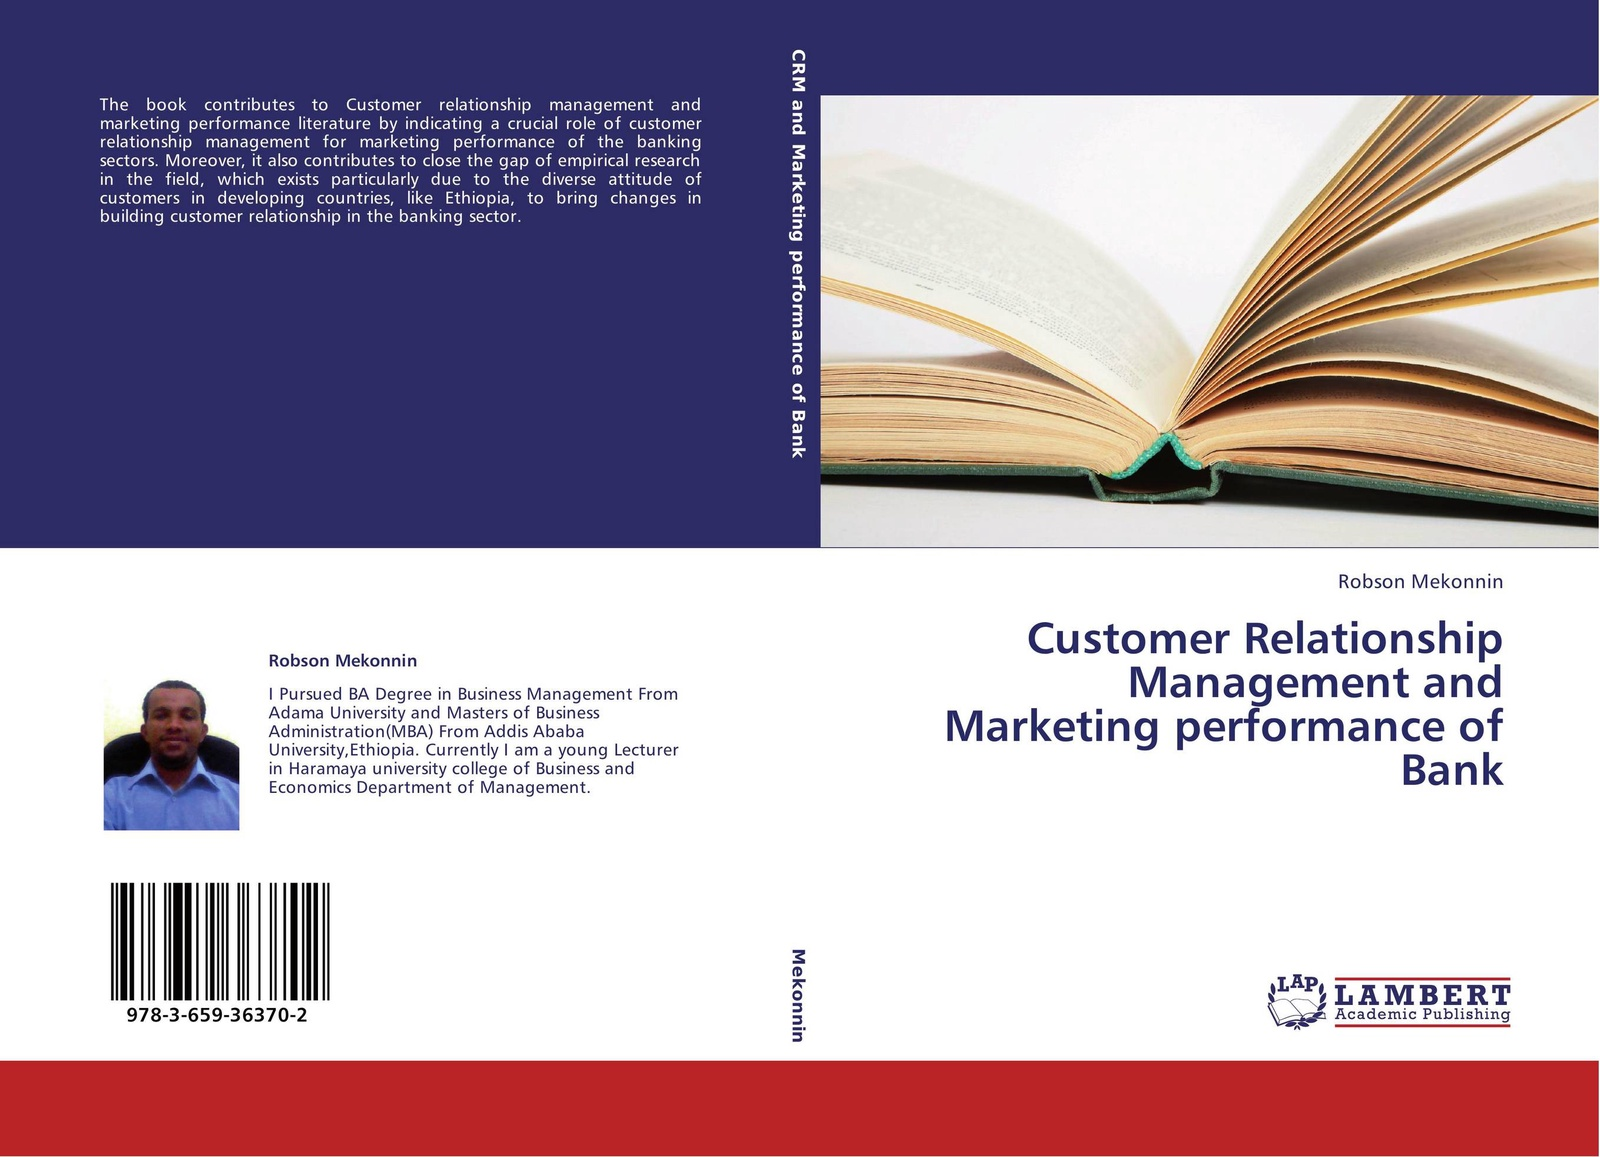 Robson Mekonnin Customer Relationship Management and Marketing performance of Bank aga kamilla it fur kunden qualitatsmanagement bei customer relationship management